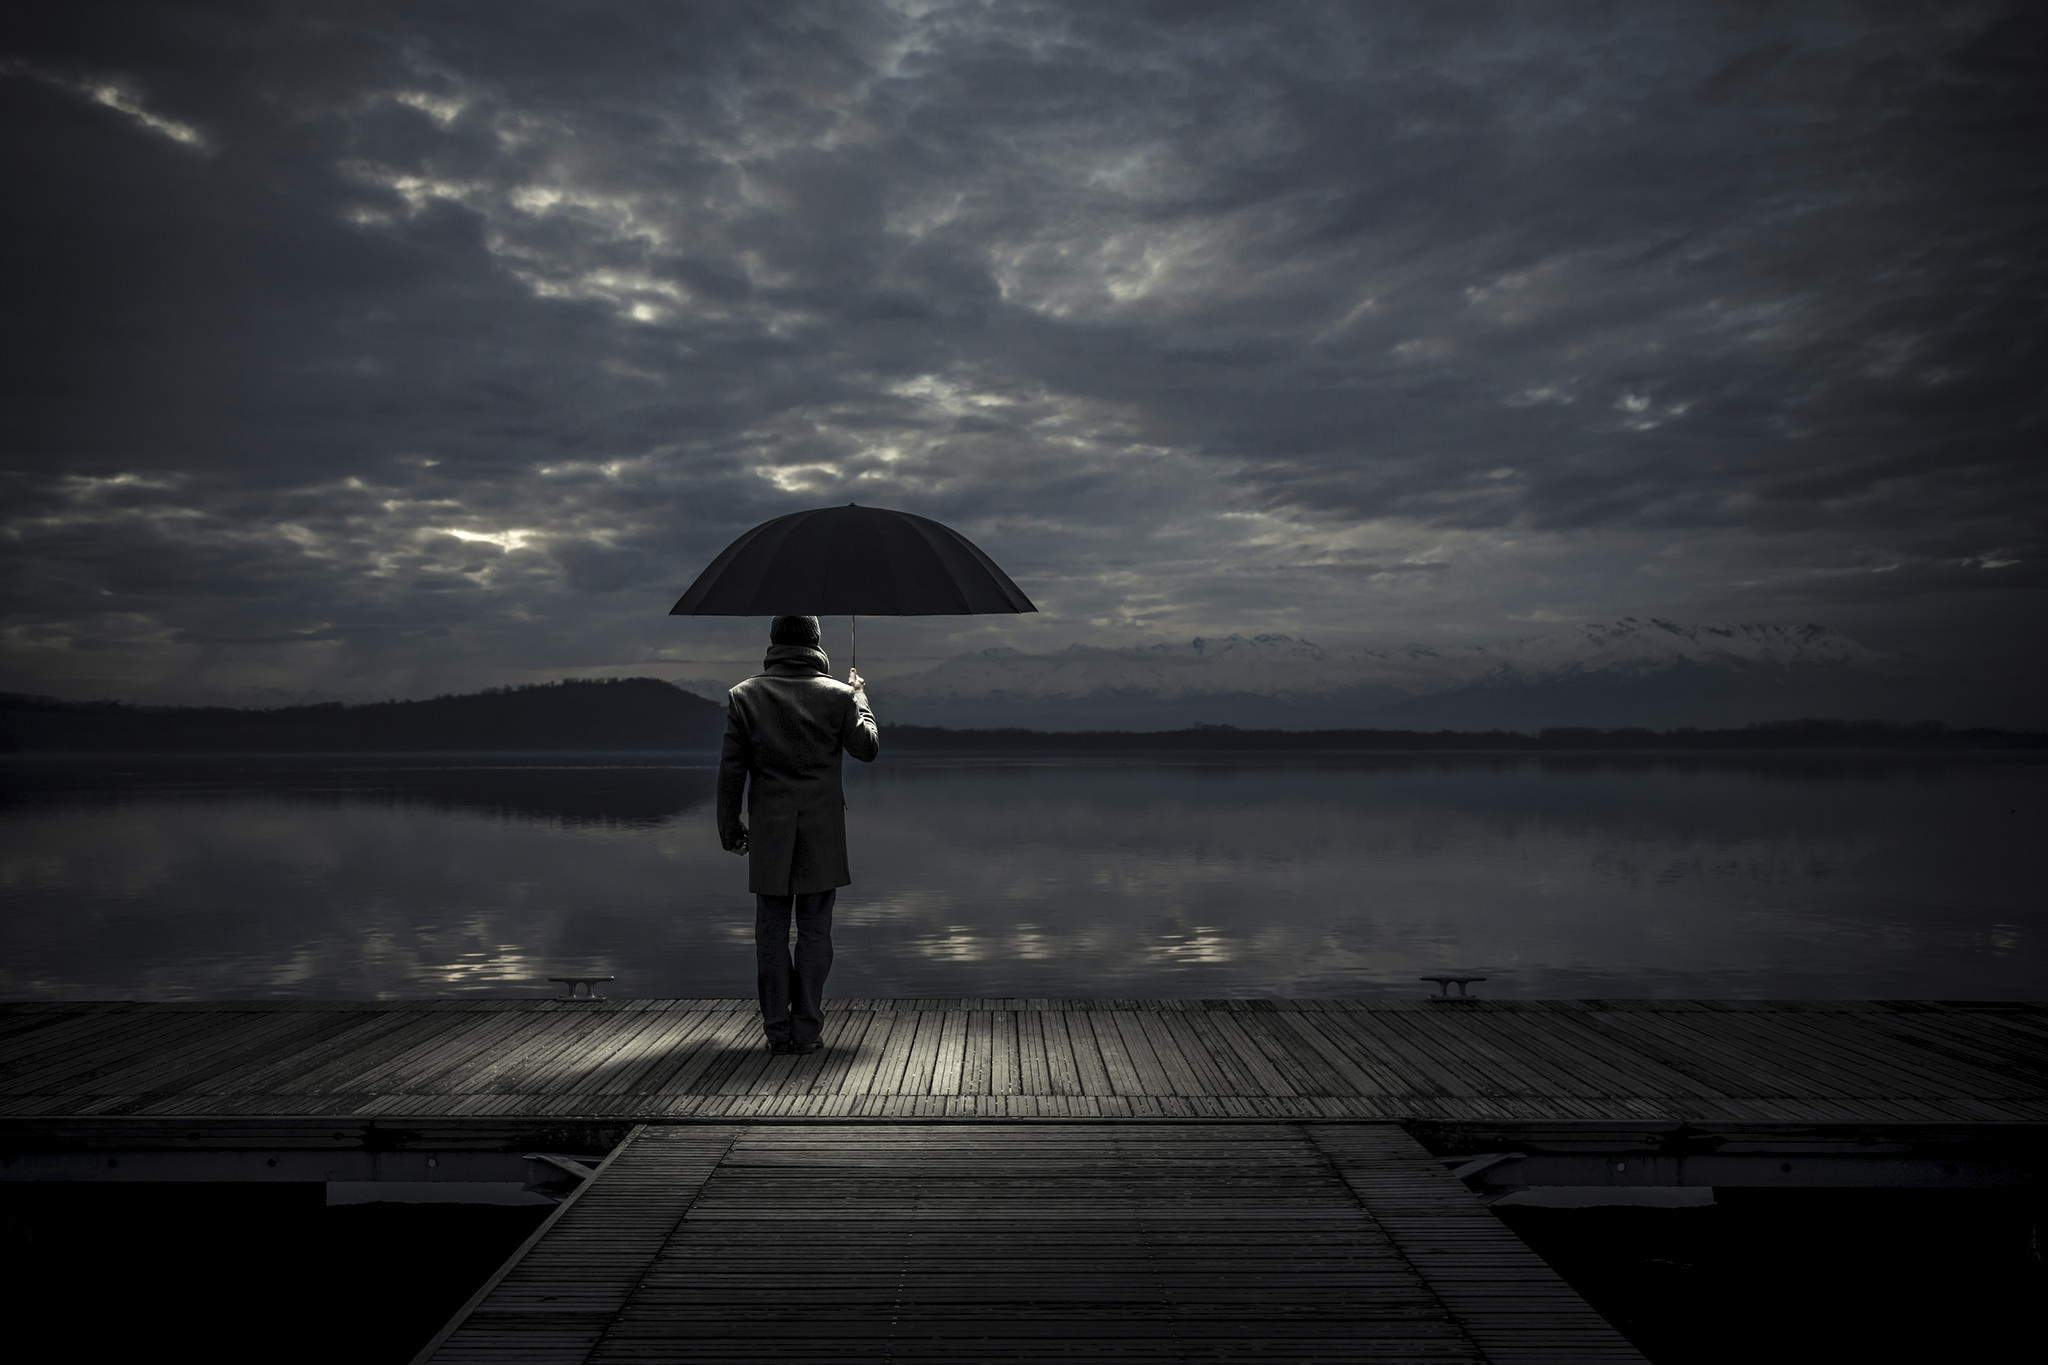 Love Wallpaper For Man : 1280x1024 Alone man With Umbrella 1280x1024 Resolution HD ...